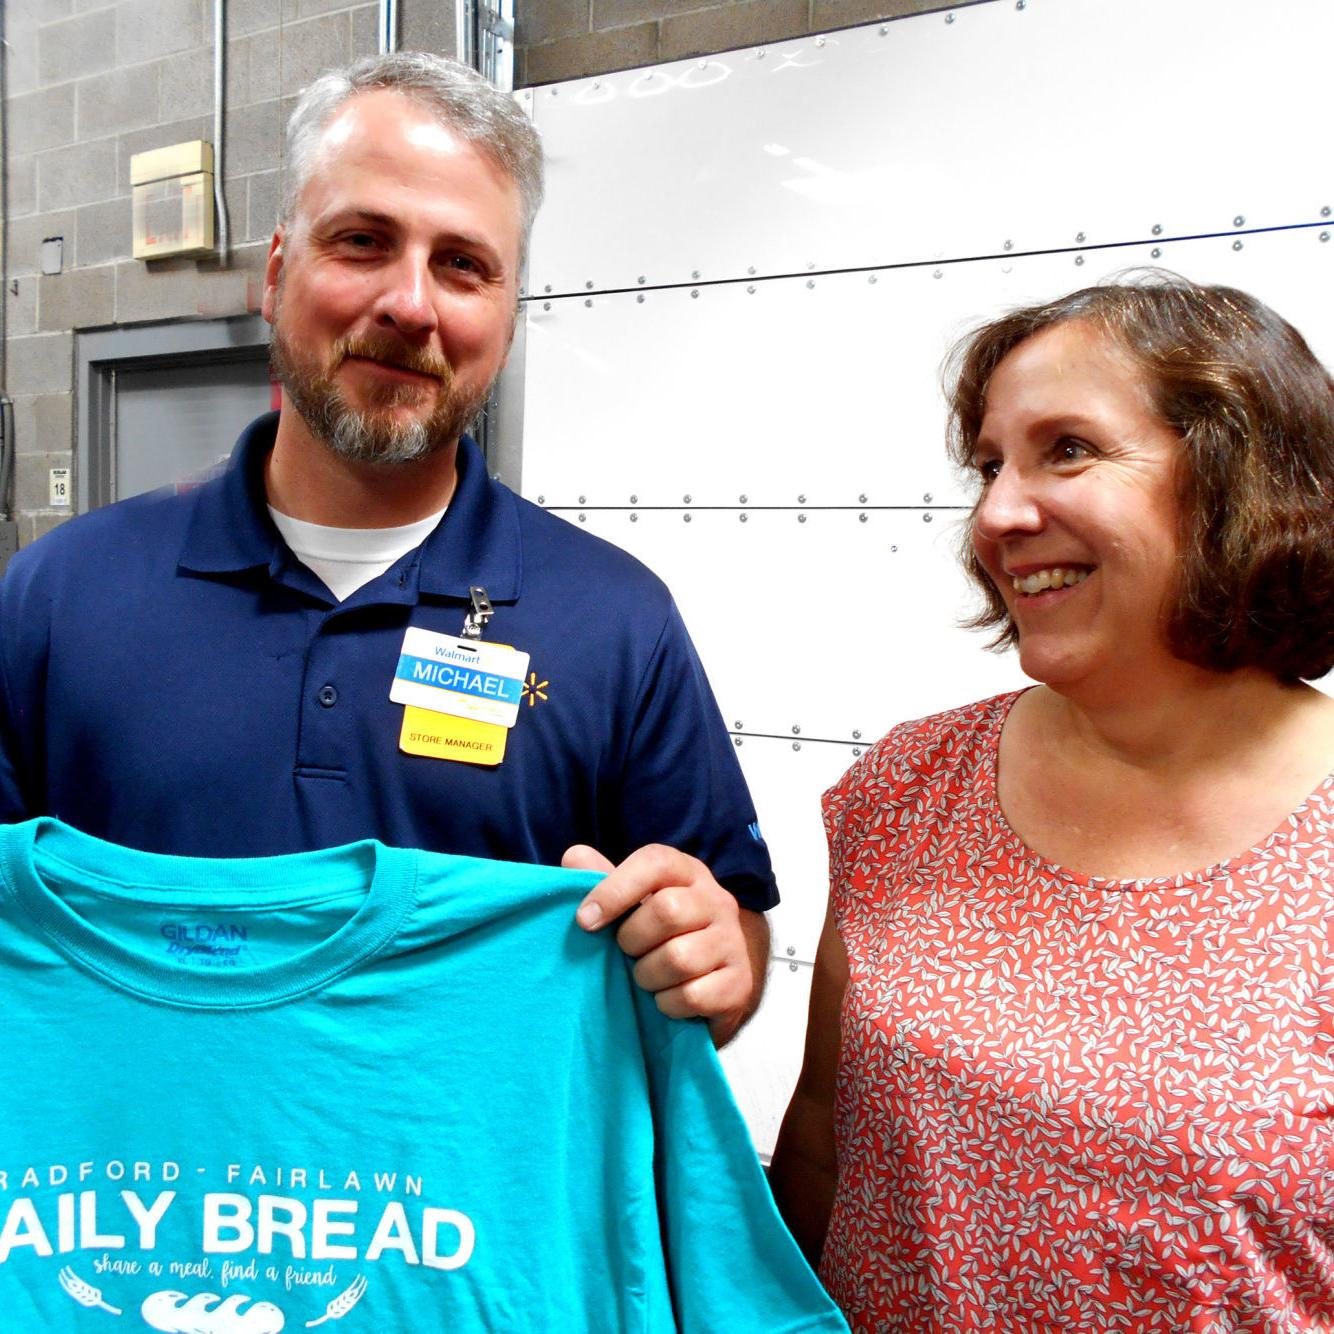 Radford Daily Bread thanks Fairlawn Walmart for years of